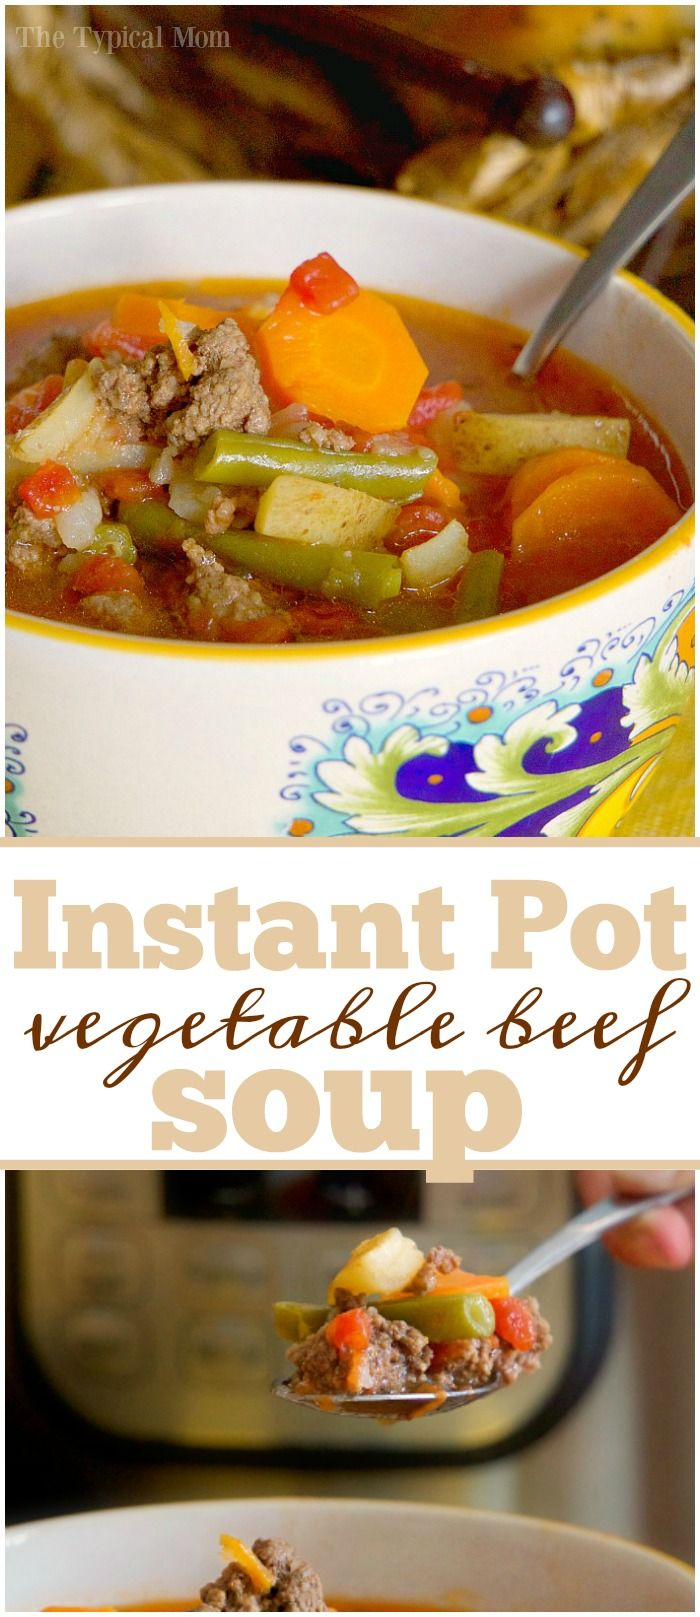 Instant Pot vegetable beef soup is amazing! Less than $20 ...